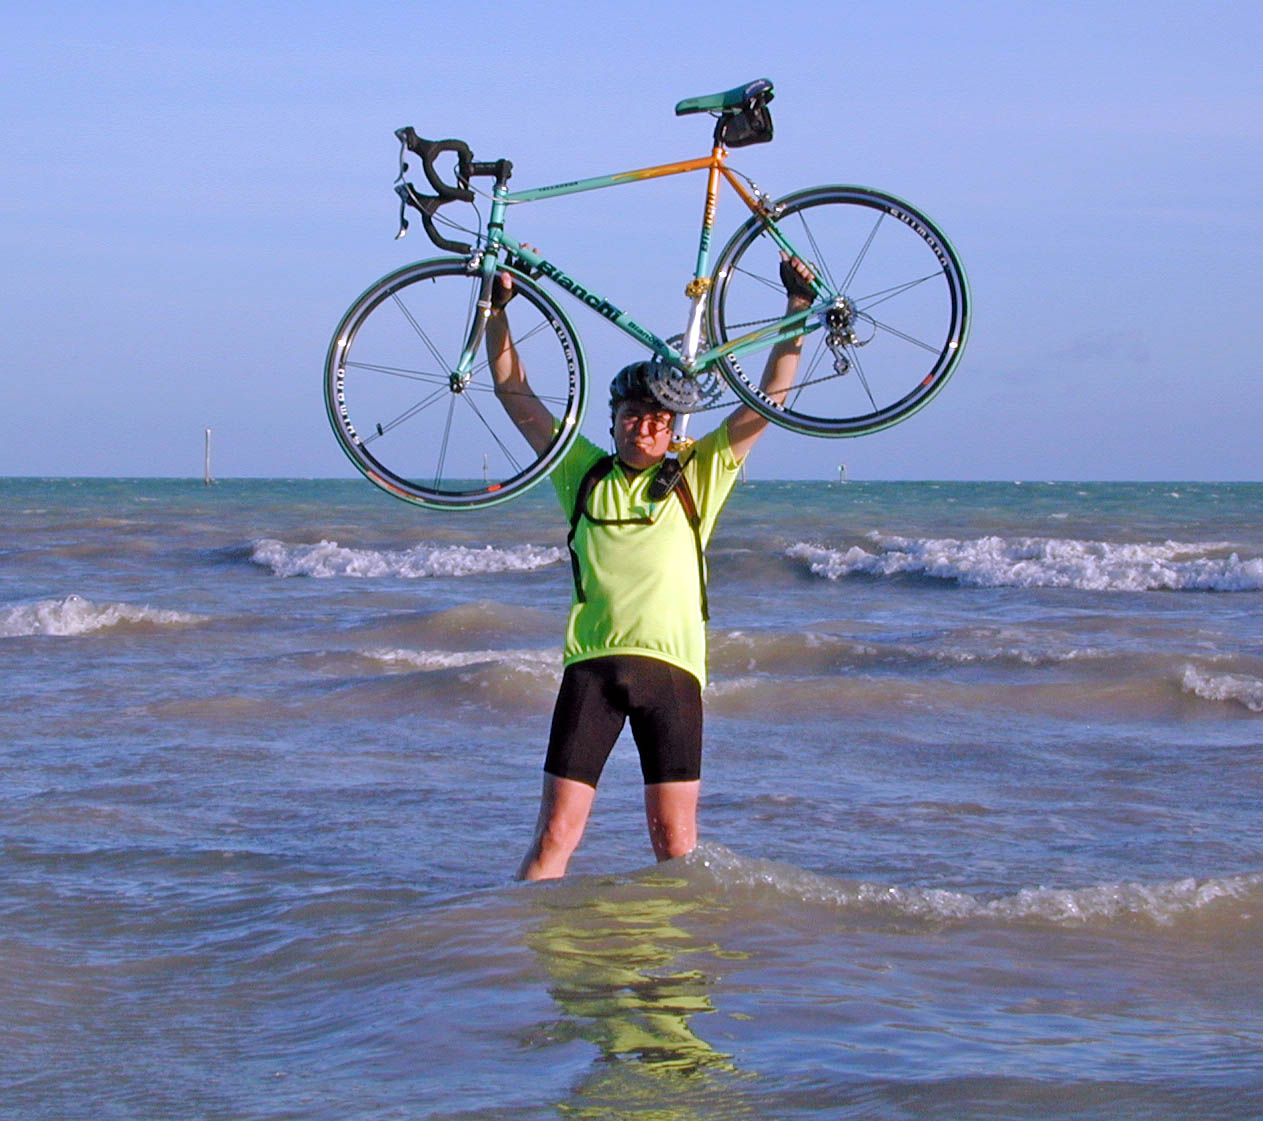 Mark Steinhoff Lifting His Bicycle in Victory